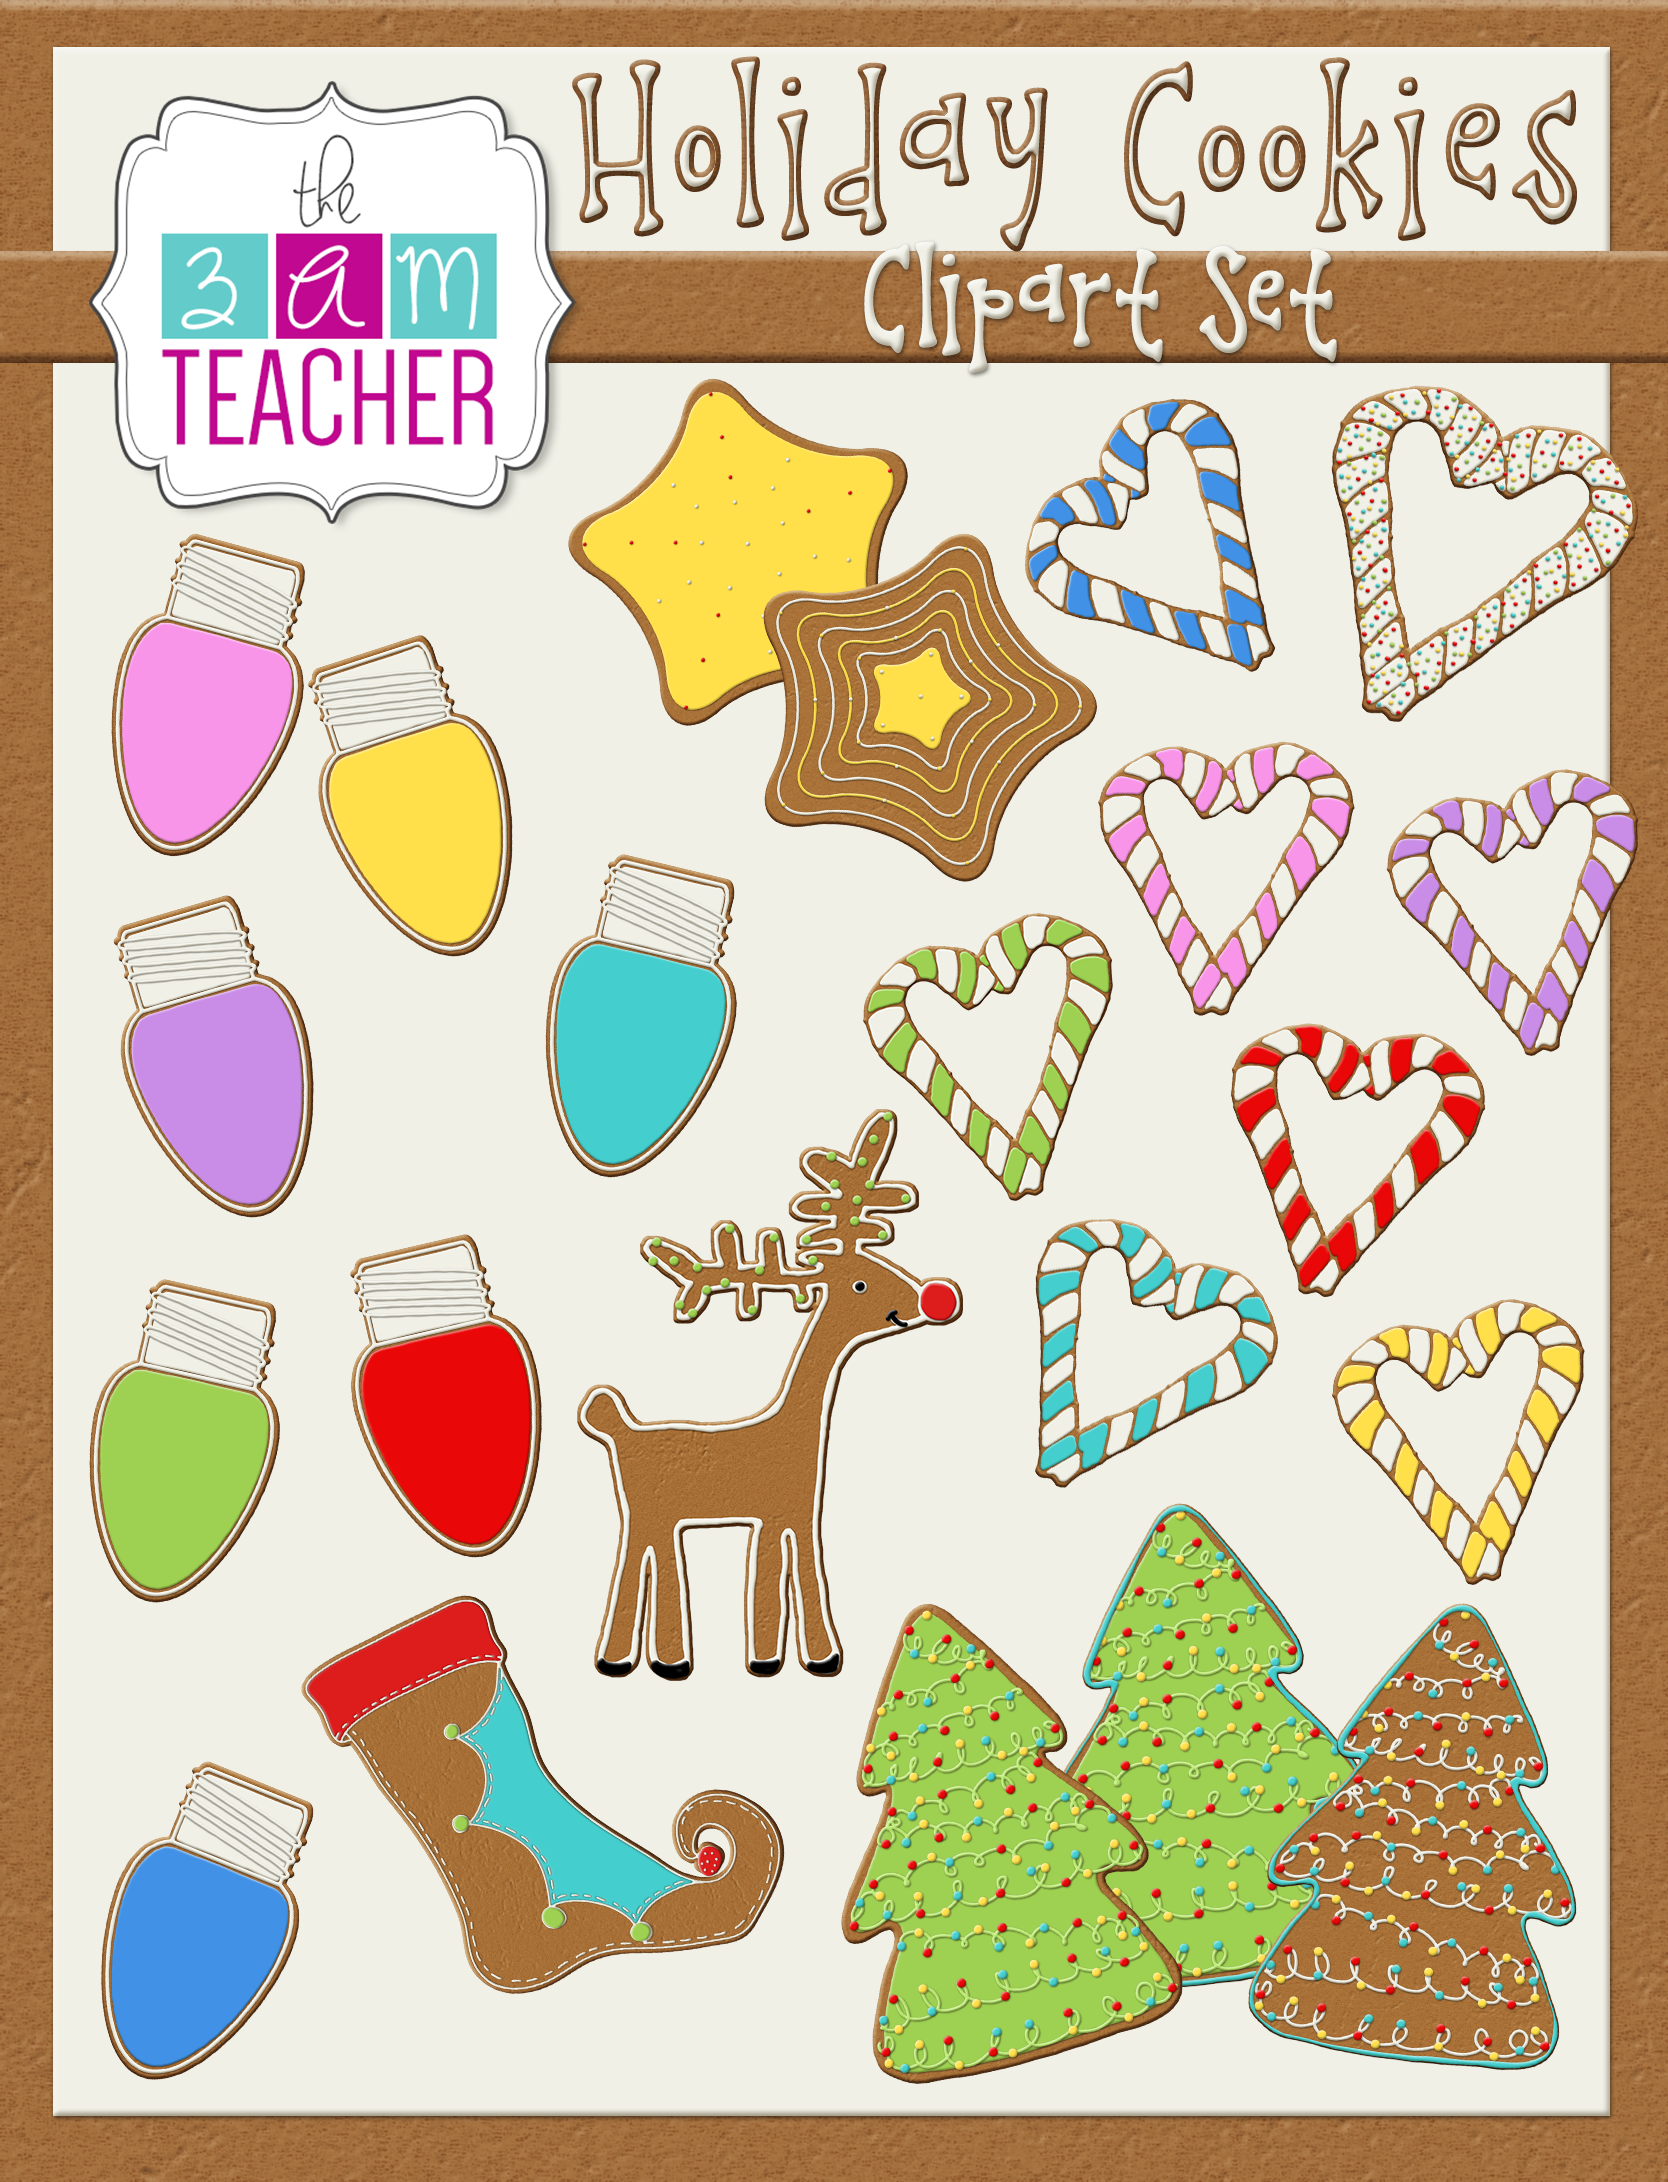 colorful gingerbread holiday cookie clipart images by the 3am teacher 5 00 [ 1668 x 2182 Pixel ]